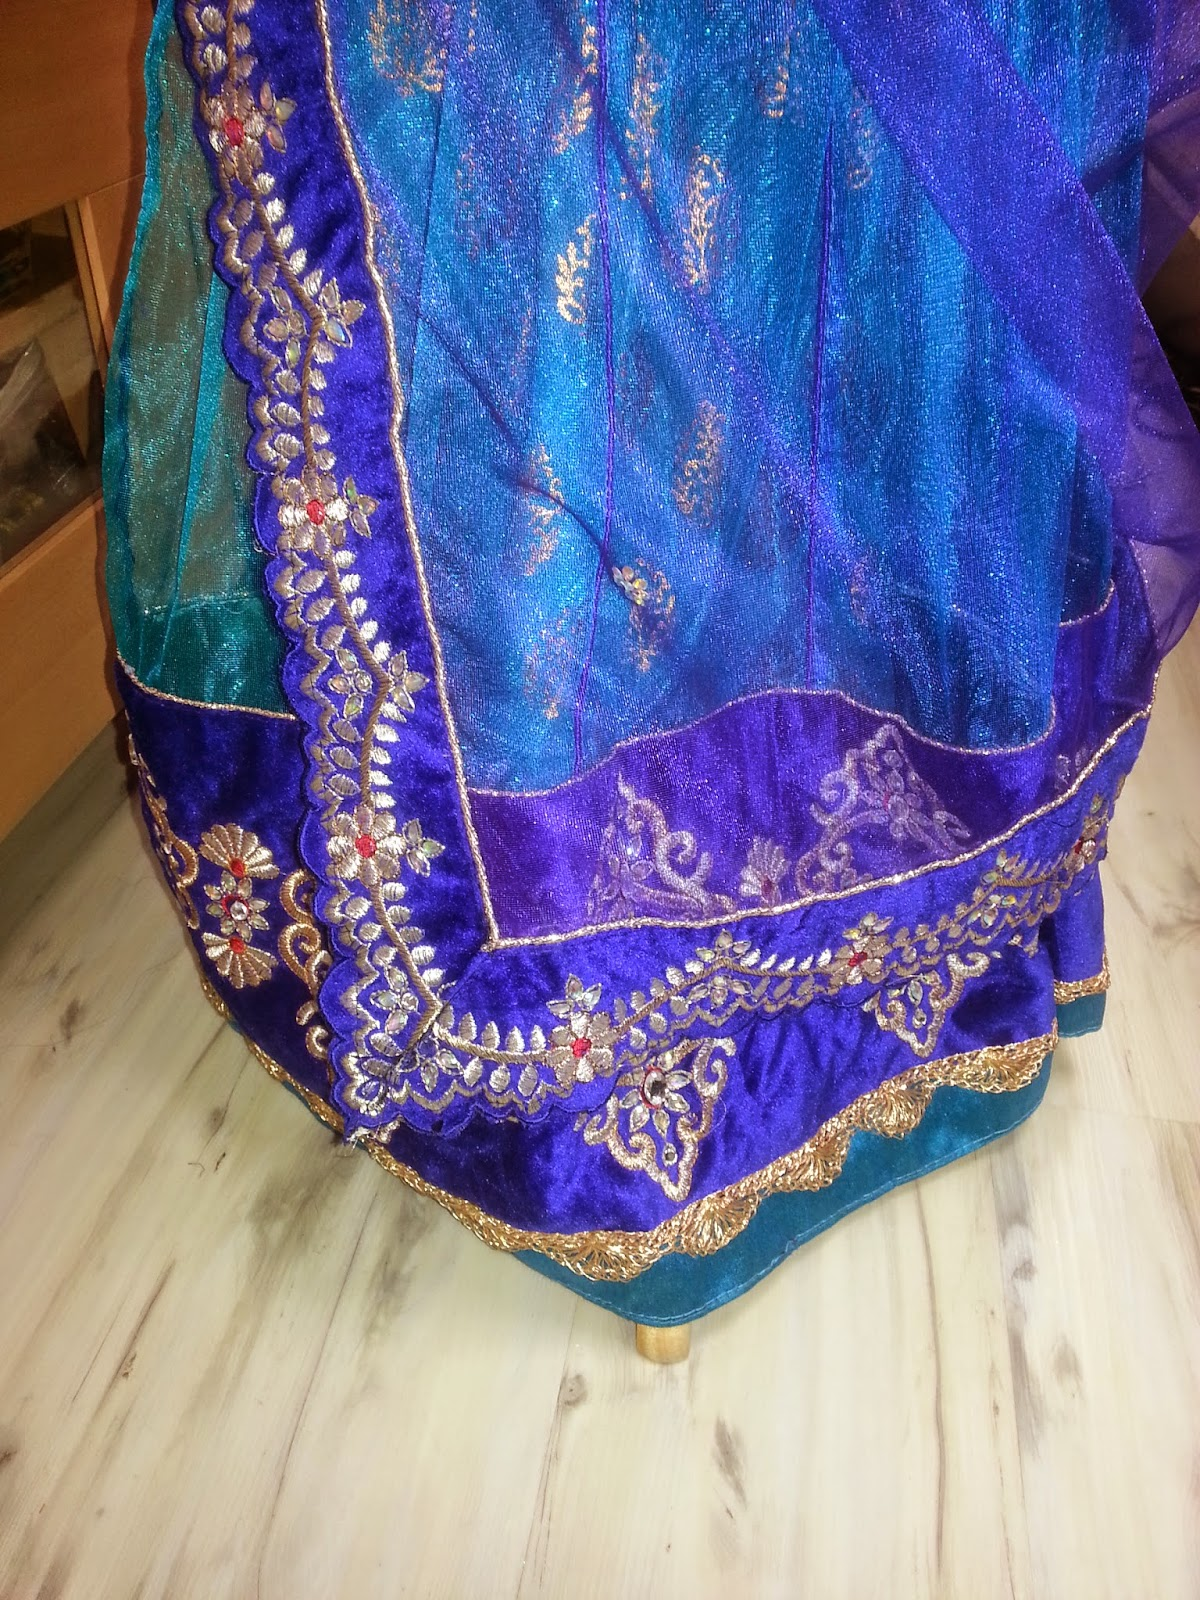 blue shades, Indian bridal wear, beautiful indian girl, authentic indian wear, designer lehenga , Seattle indian store , custom made hand bags, seattle fashions, indian-usa fashion blogger